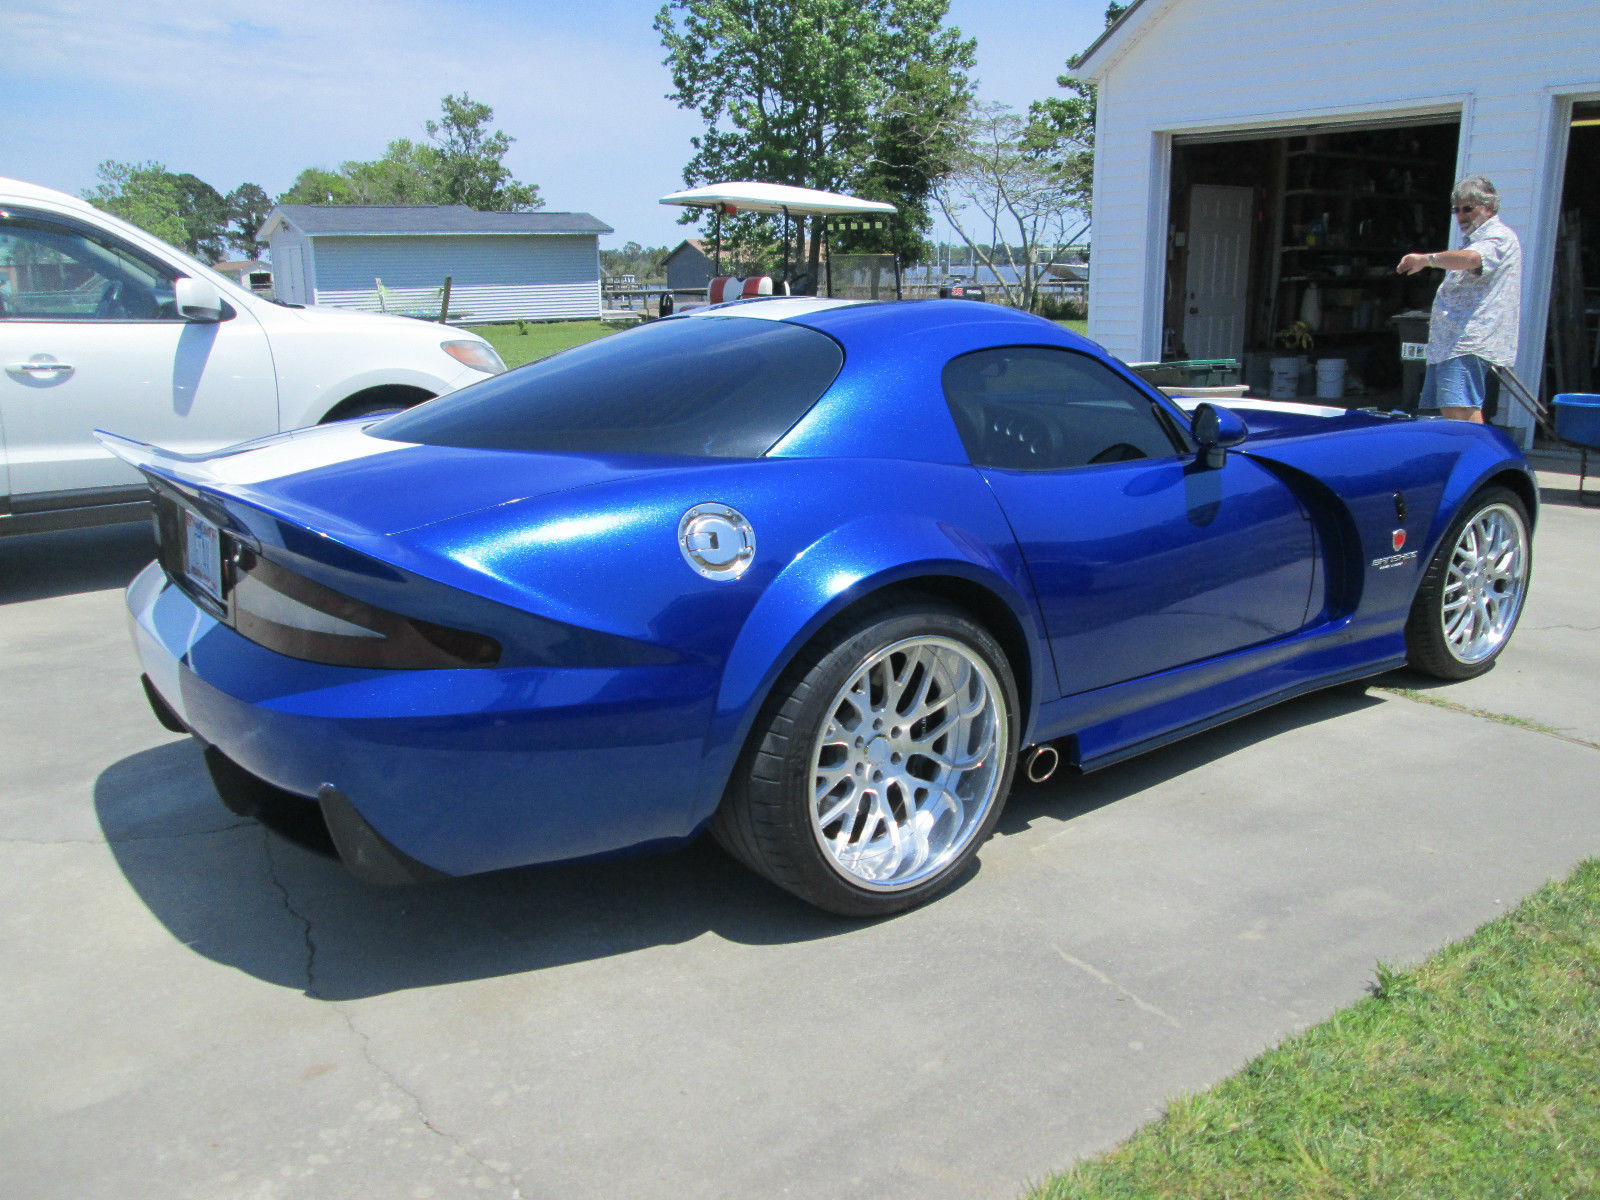 Grand Theft Auto Banshee Is For Sale On Ebay Photo Gallery